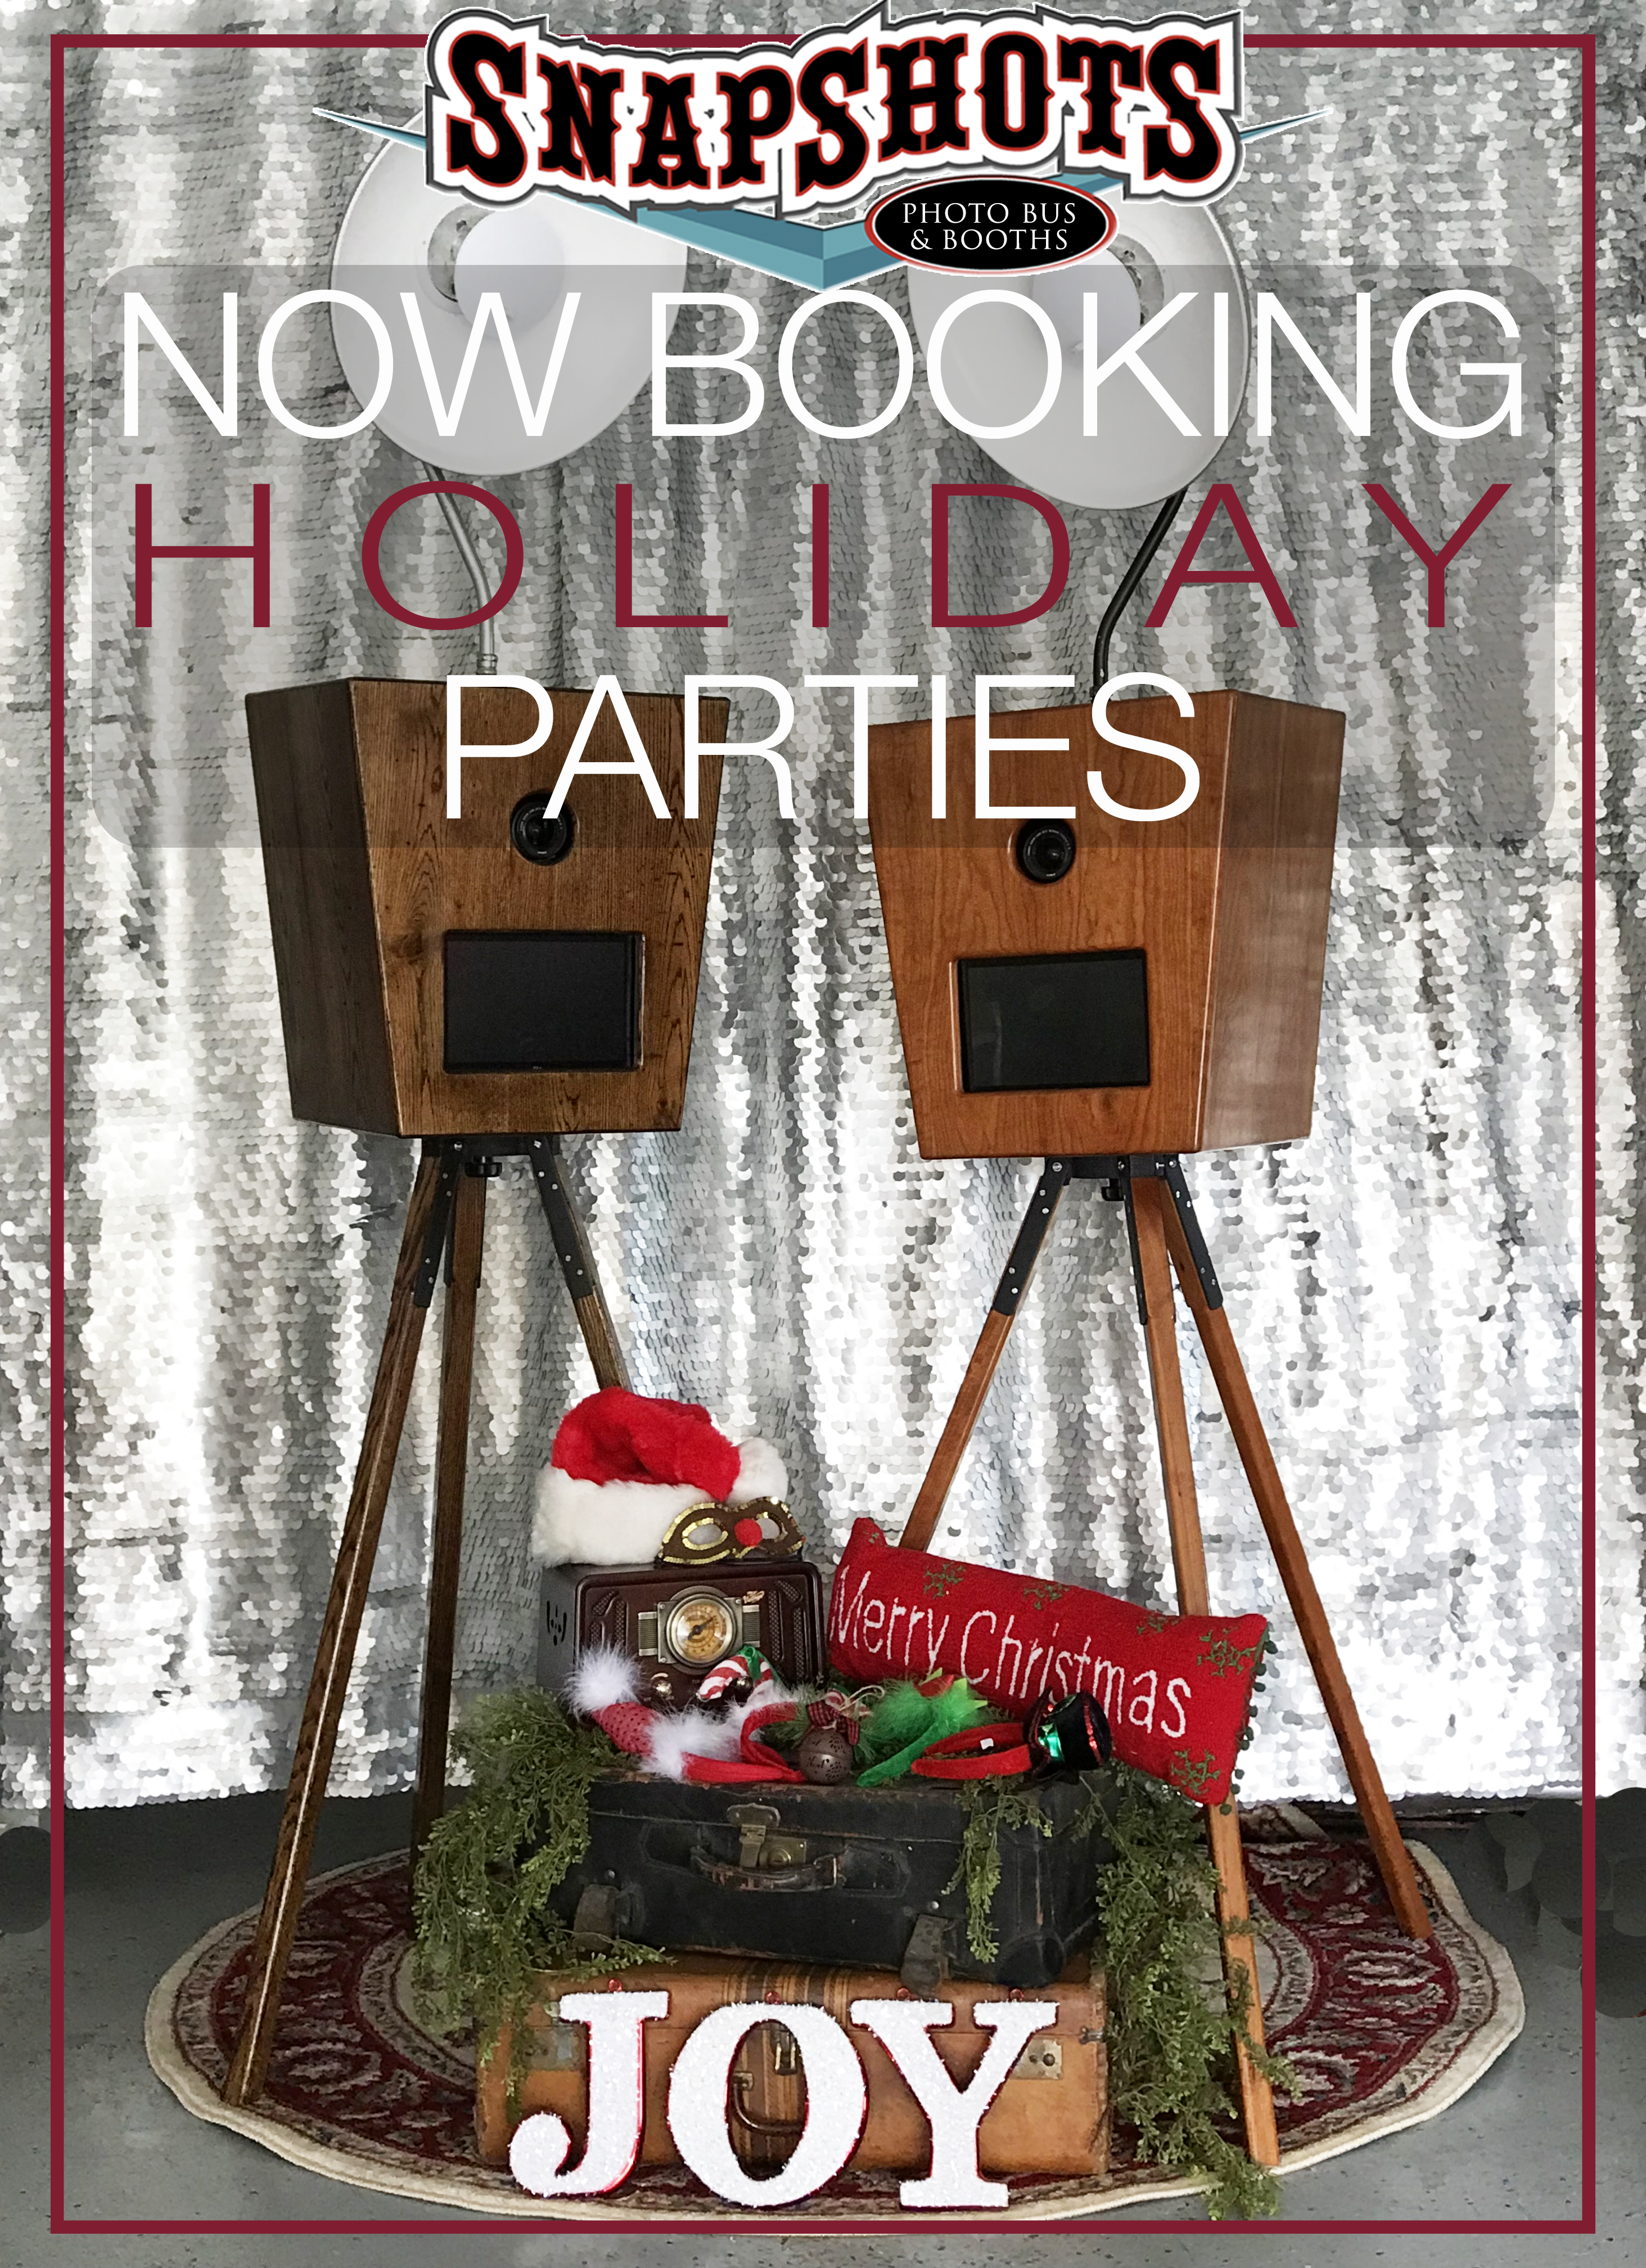 BOOK YOUR HOLIDAY PARTY WITH SNAPSHOTS PHOTO BUS AND BOOTHS